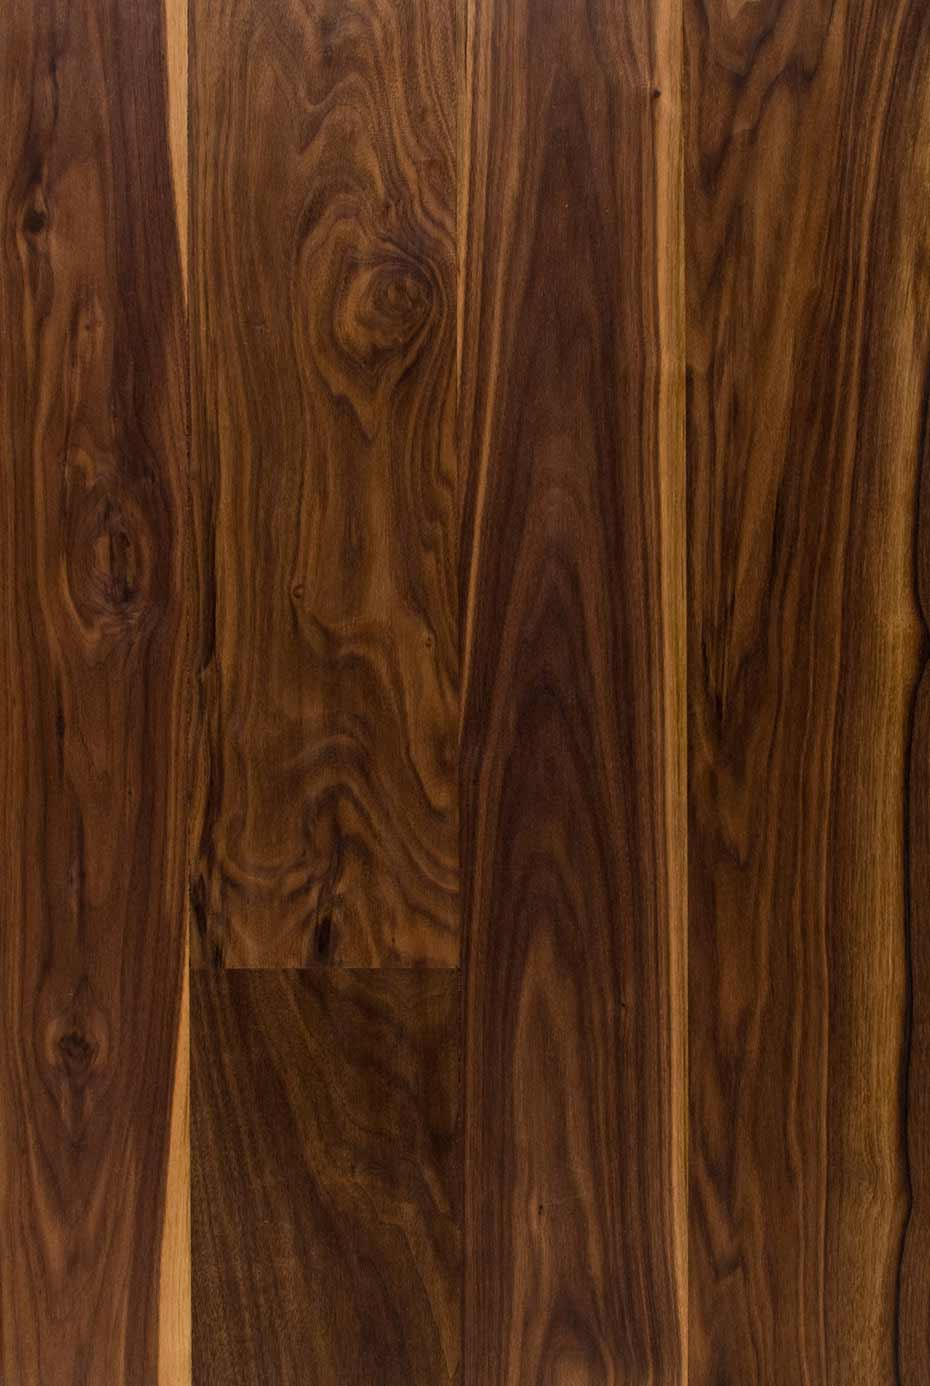 Harvest walnut flooring mountain lumber company for Walnut flooring